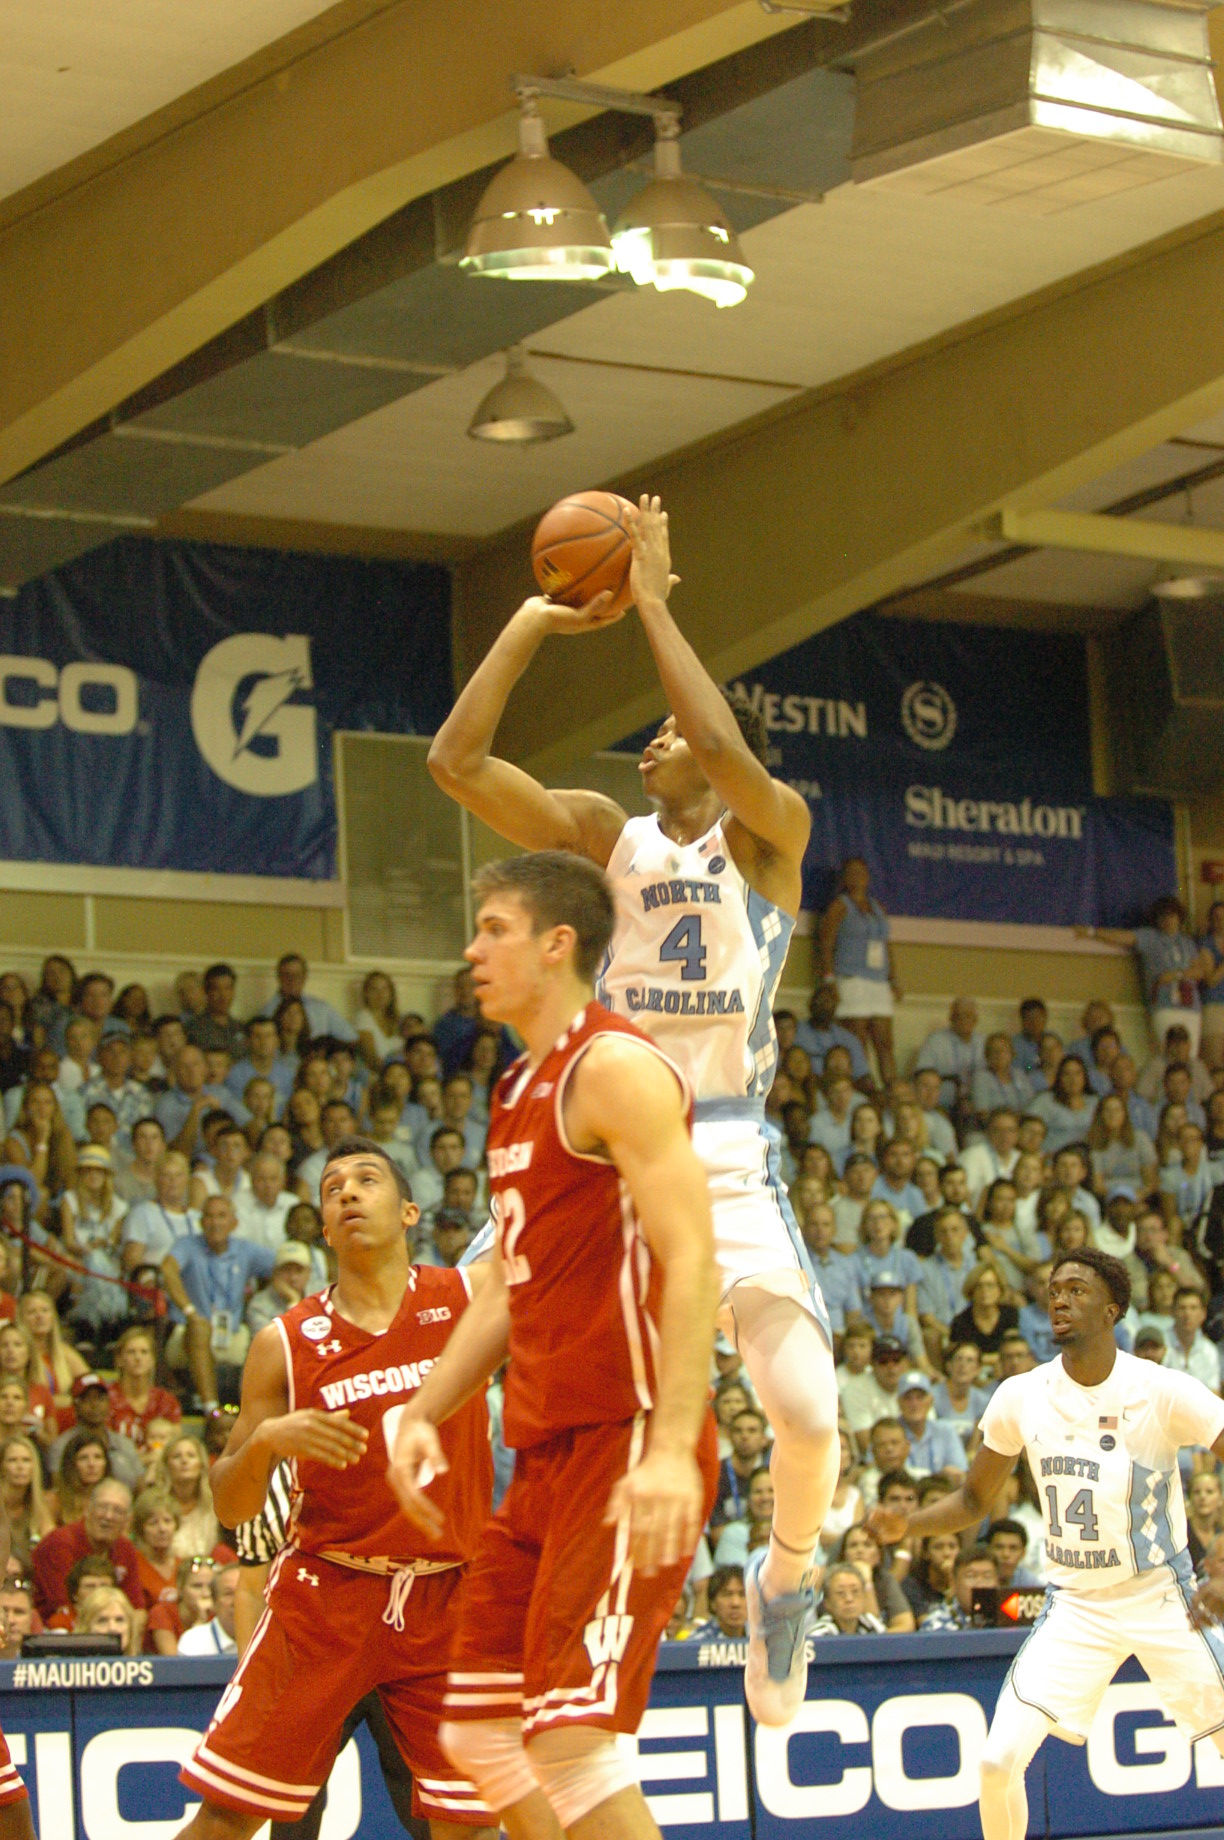 UNC #4 Isaiah Hicks. Championship game between UW vs UNC at the 2016 Maui Jim Maui Invitational. PC: Joel B. Tamayo.